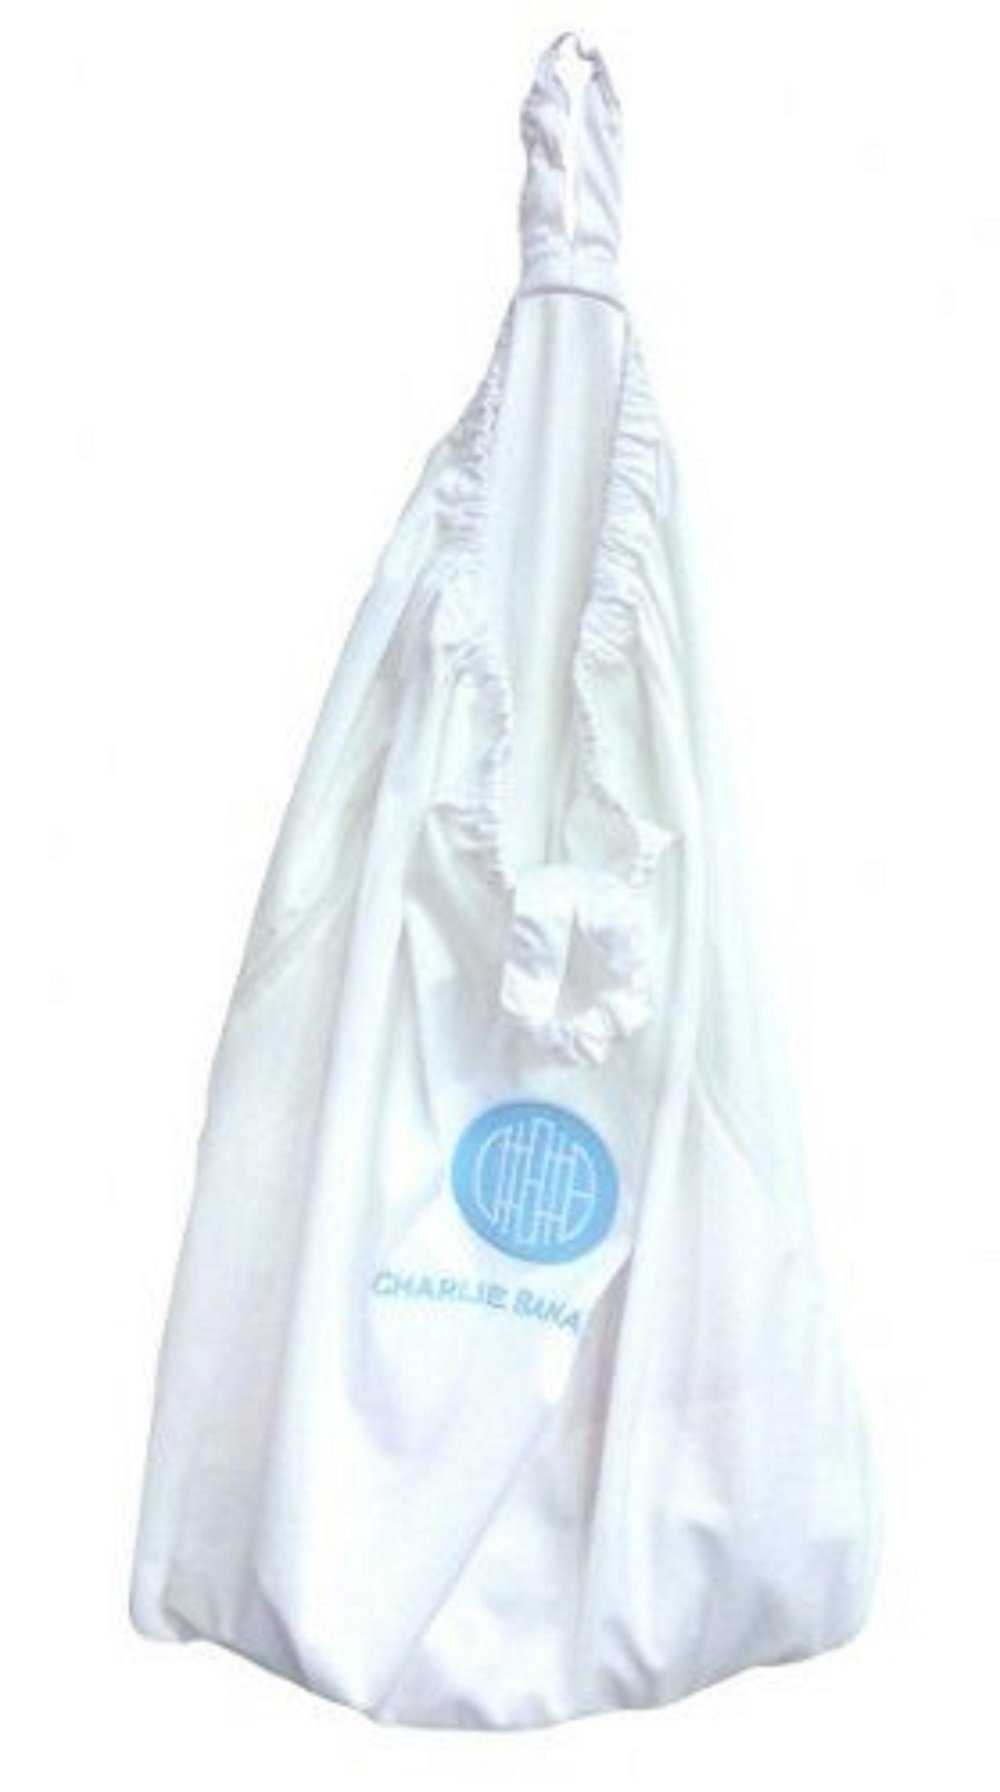 Winc Design Limited 889395 Hanging Diaper Pail White in box